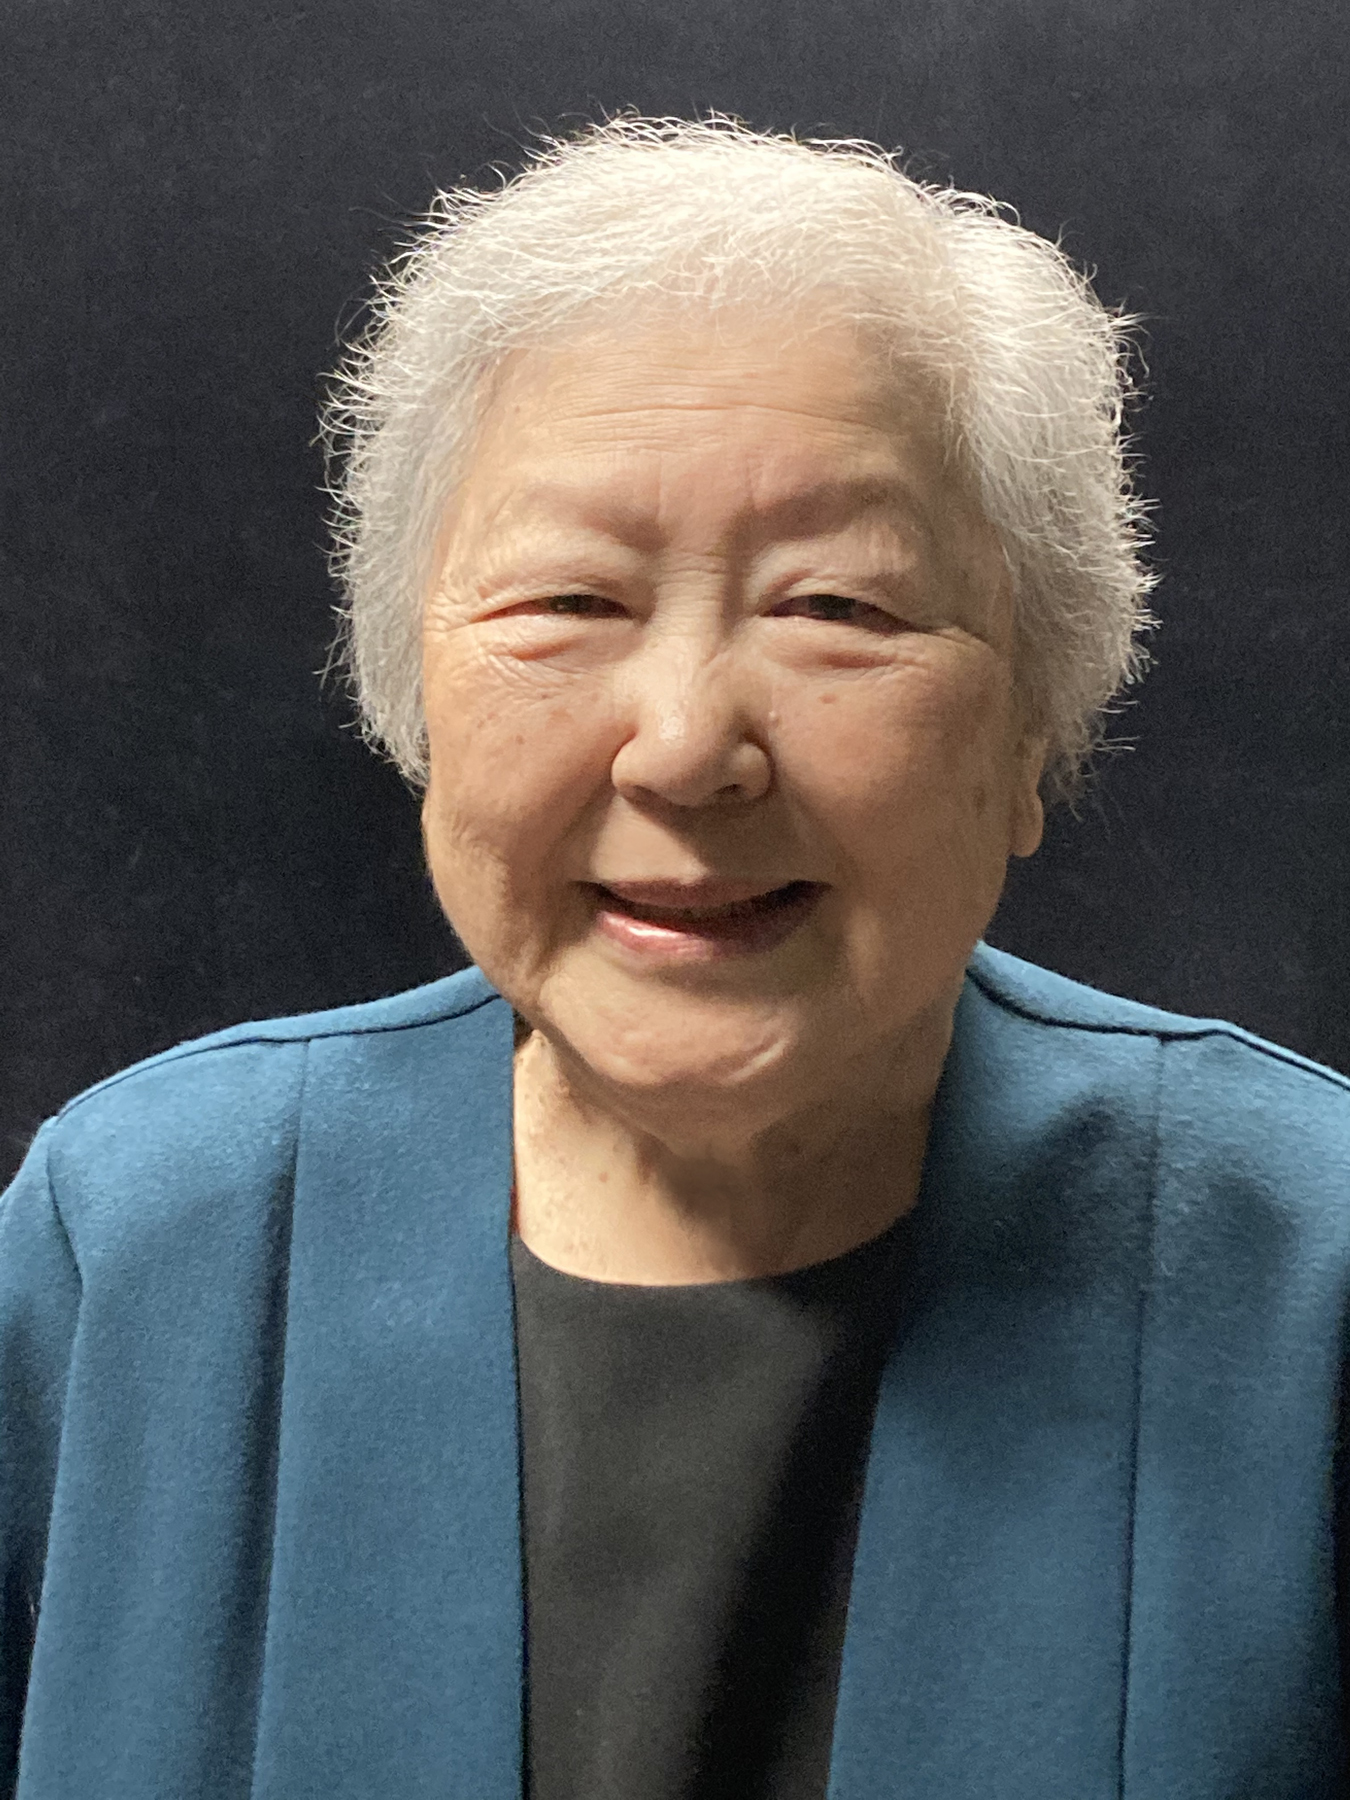 """Yoshiye """"Yo"""" Yasuda, who was recently interviewed for Densho's oral history program. She is smiling and wearing a blue jacket over a black shirt."""